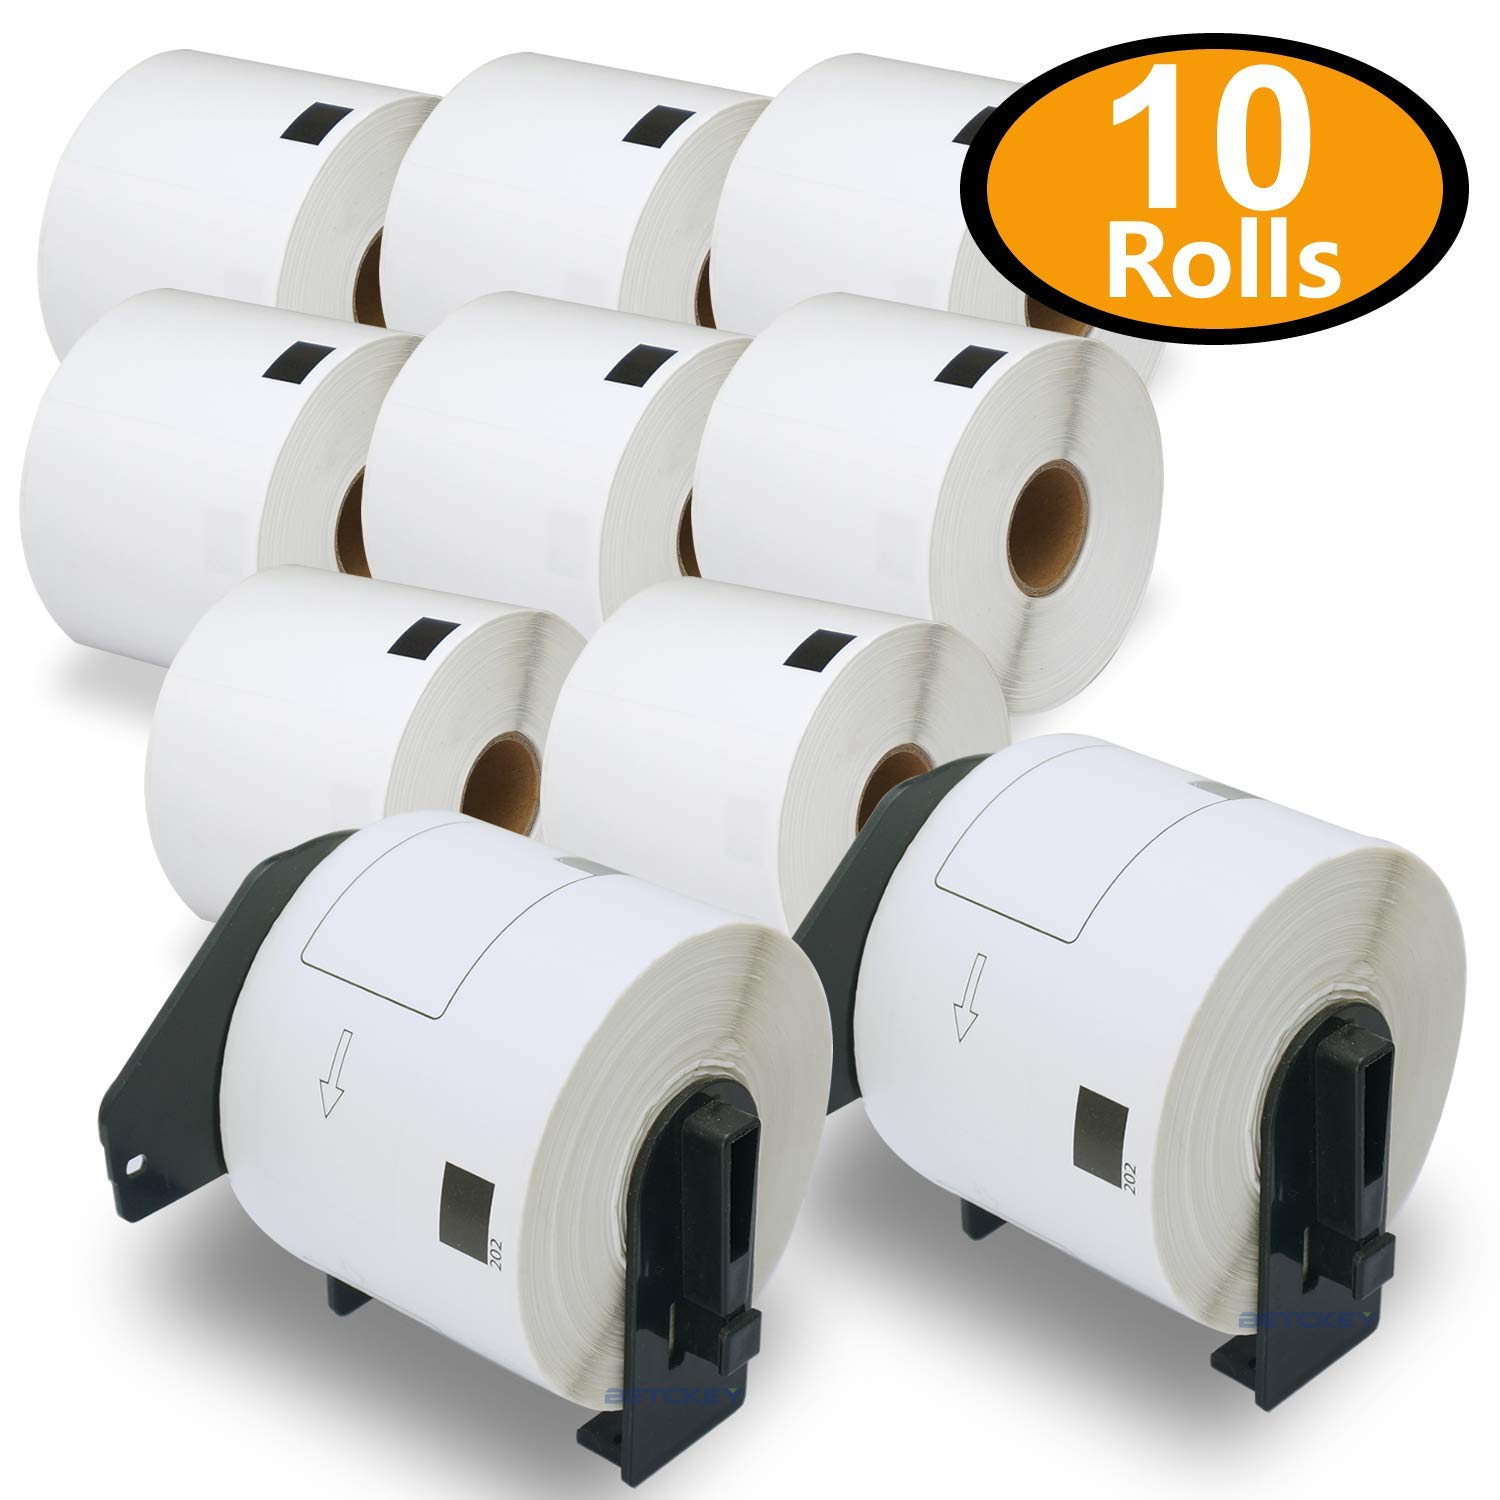 10PK Compatible Brother DK-11202 Shipping Labels 62mm x 100mm 3000 Labels With 2 Refillable Cartridge